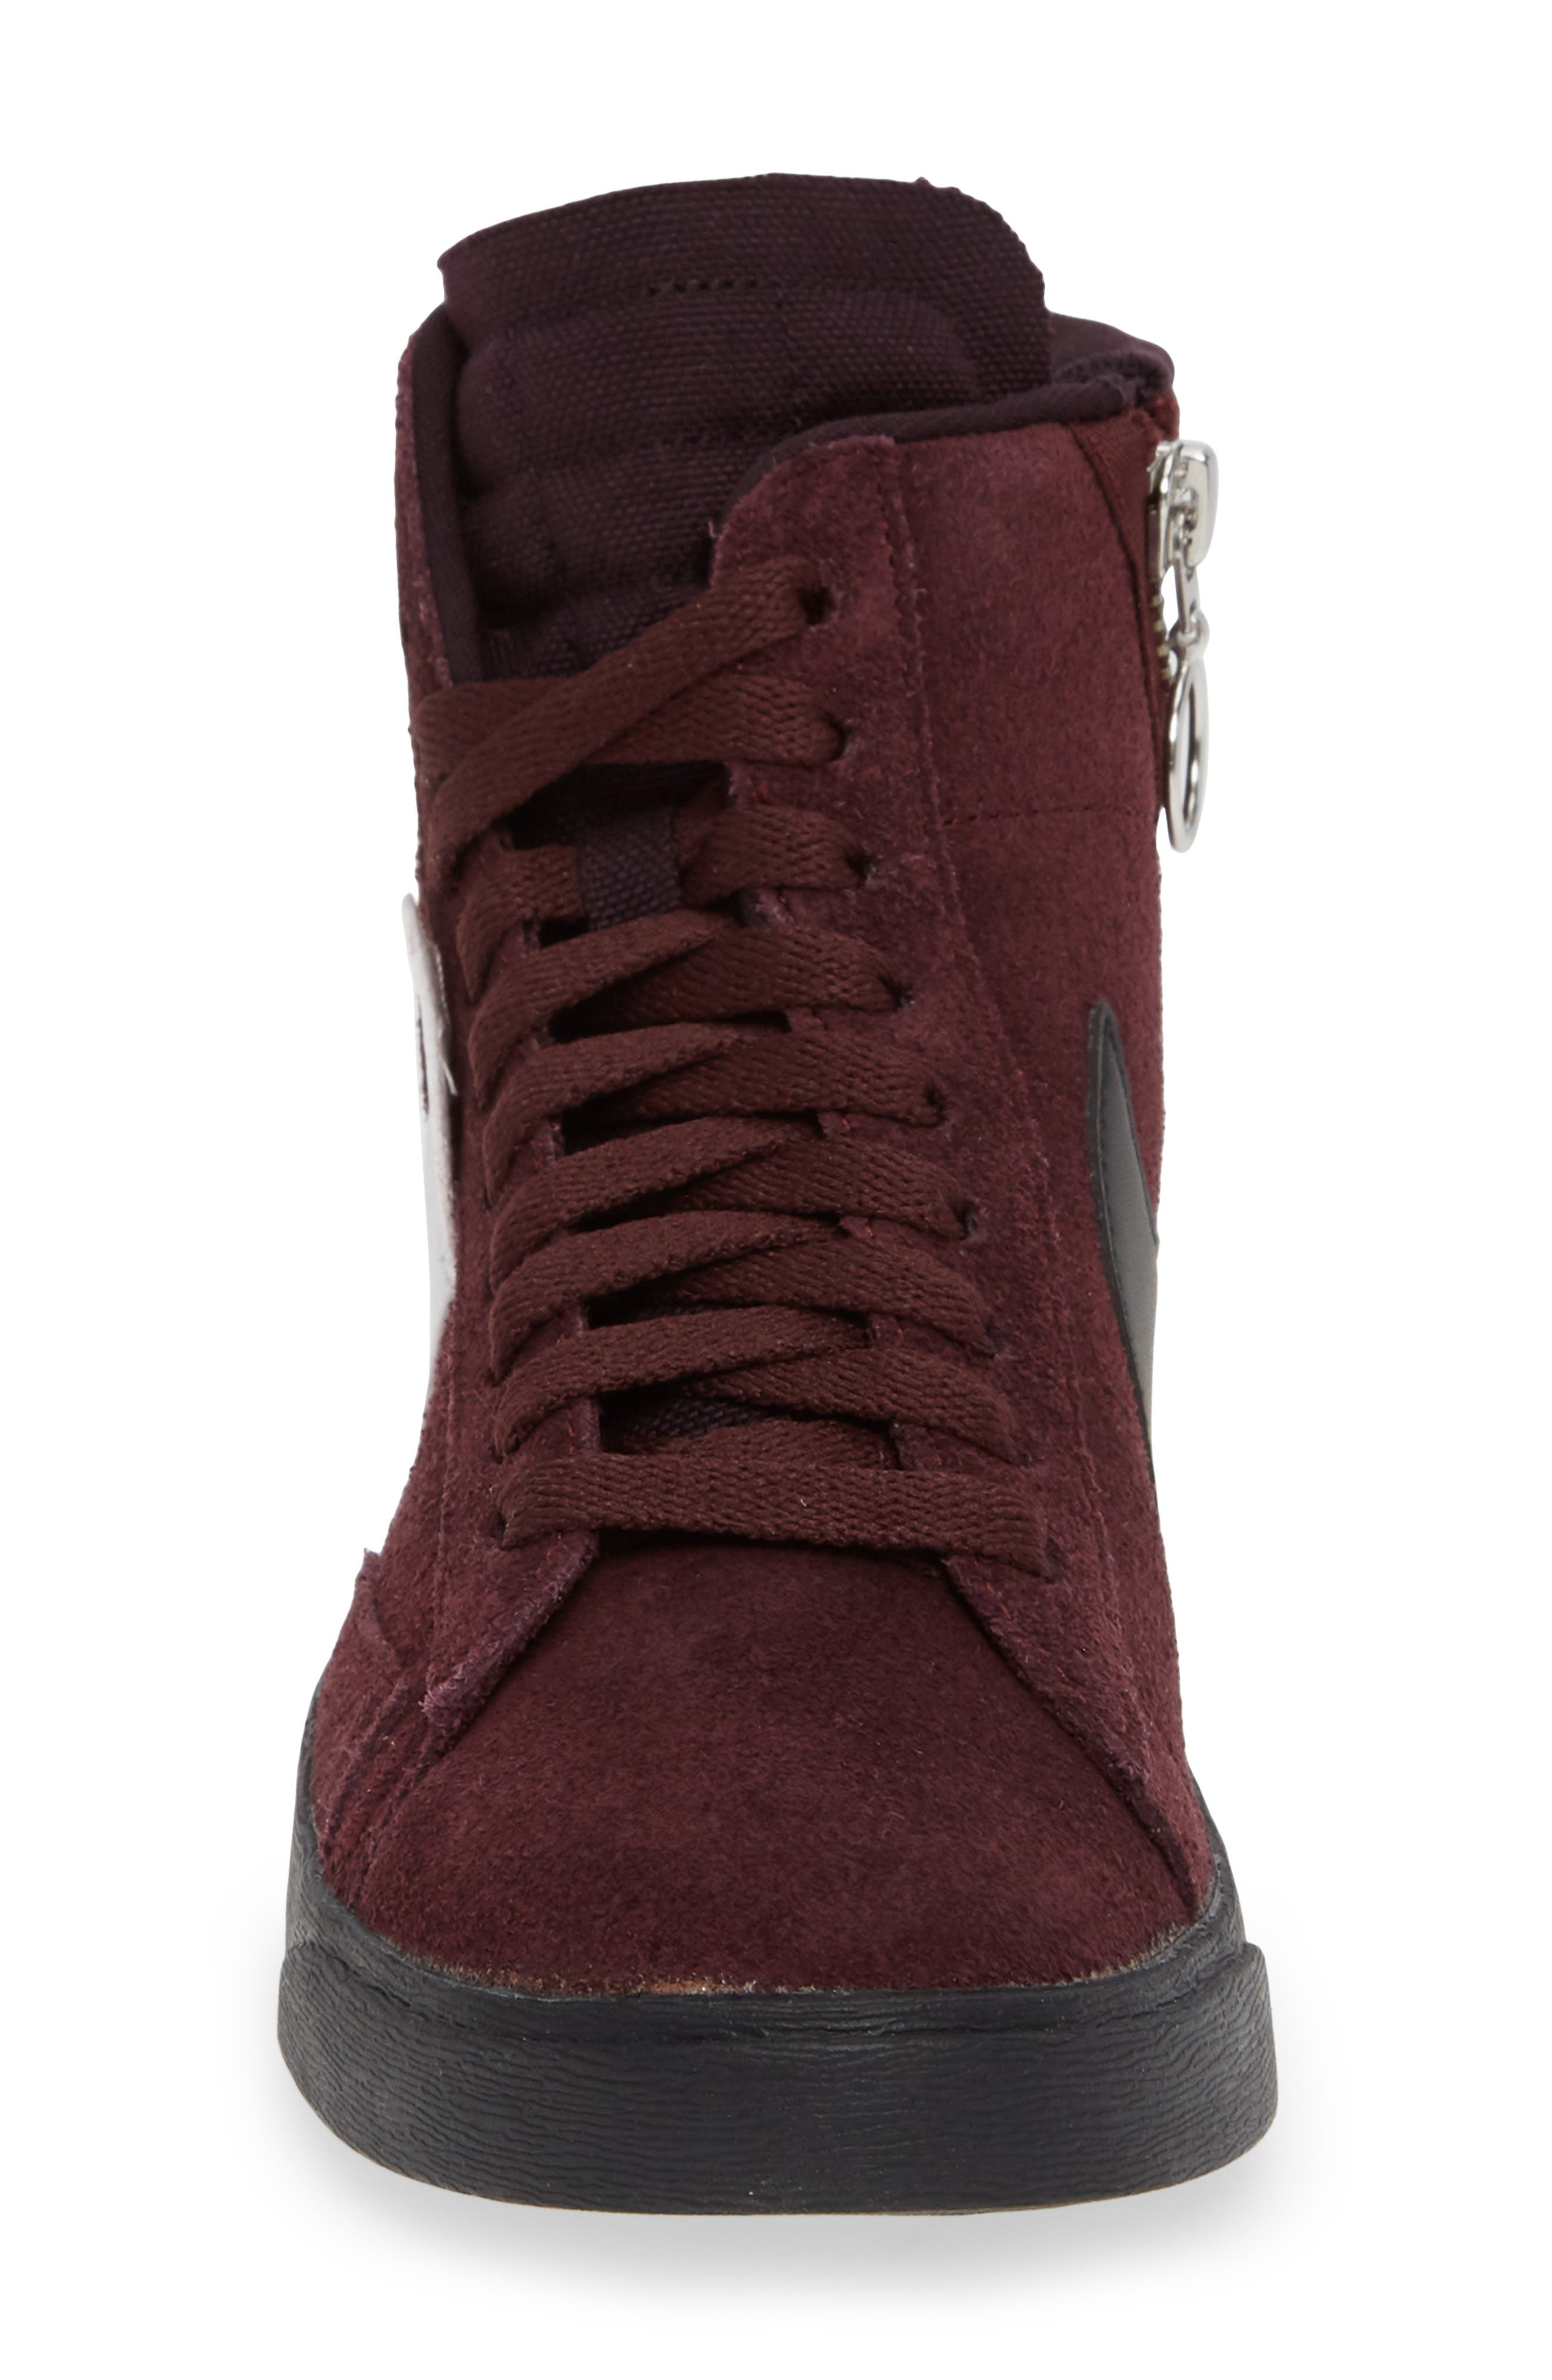 Blazer Mid Rebel Sneaker,                             Alternate thumbnail 4, color,                             BURGUNDY CRUSH/ ASH- WHITE